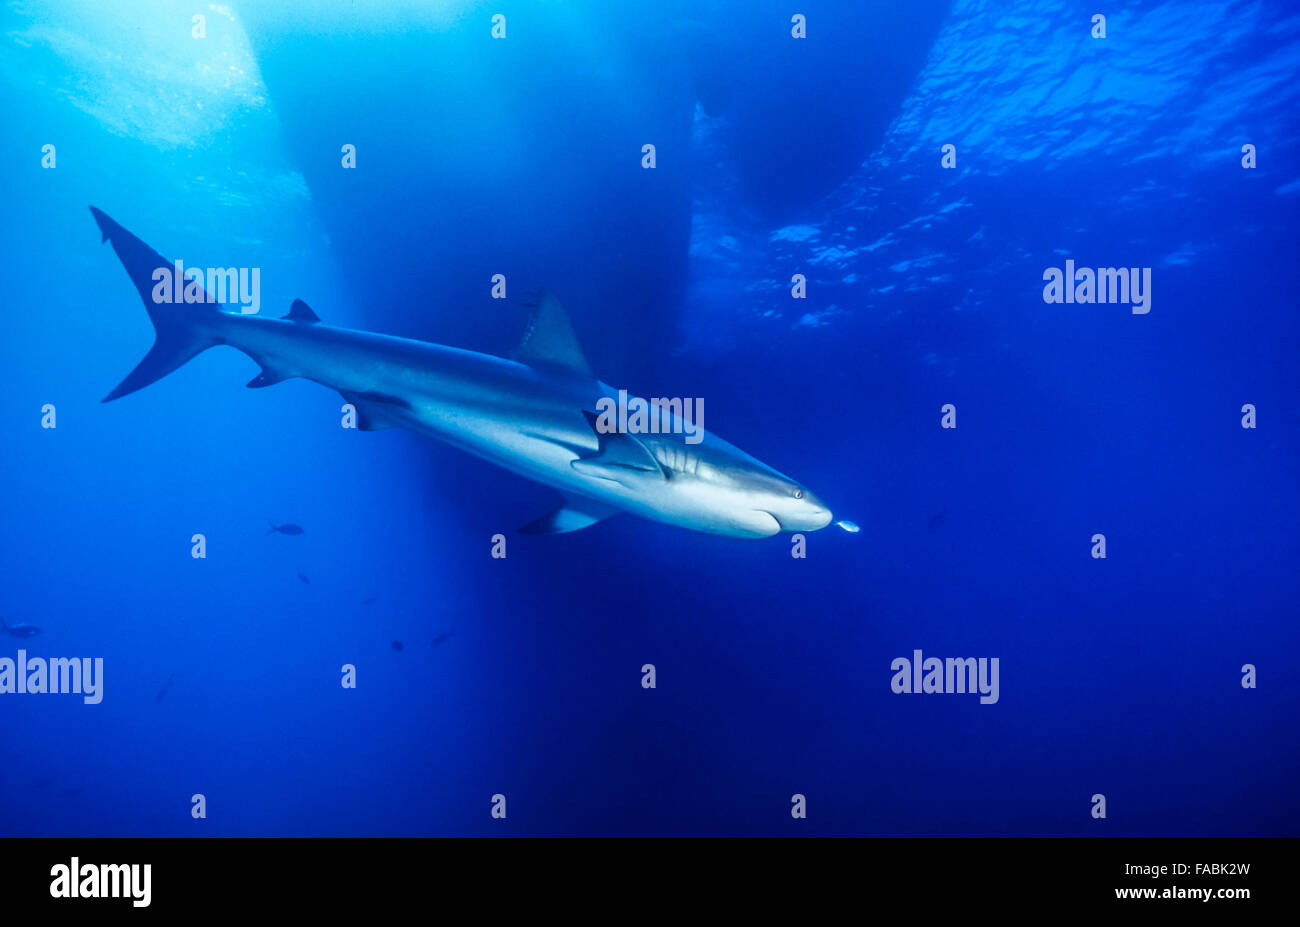 Caribbean reef shark, Carcharhinus perezii, is a species of requiem shark, belonging to the family Carcharhinidae Stock Photo